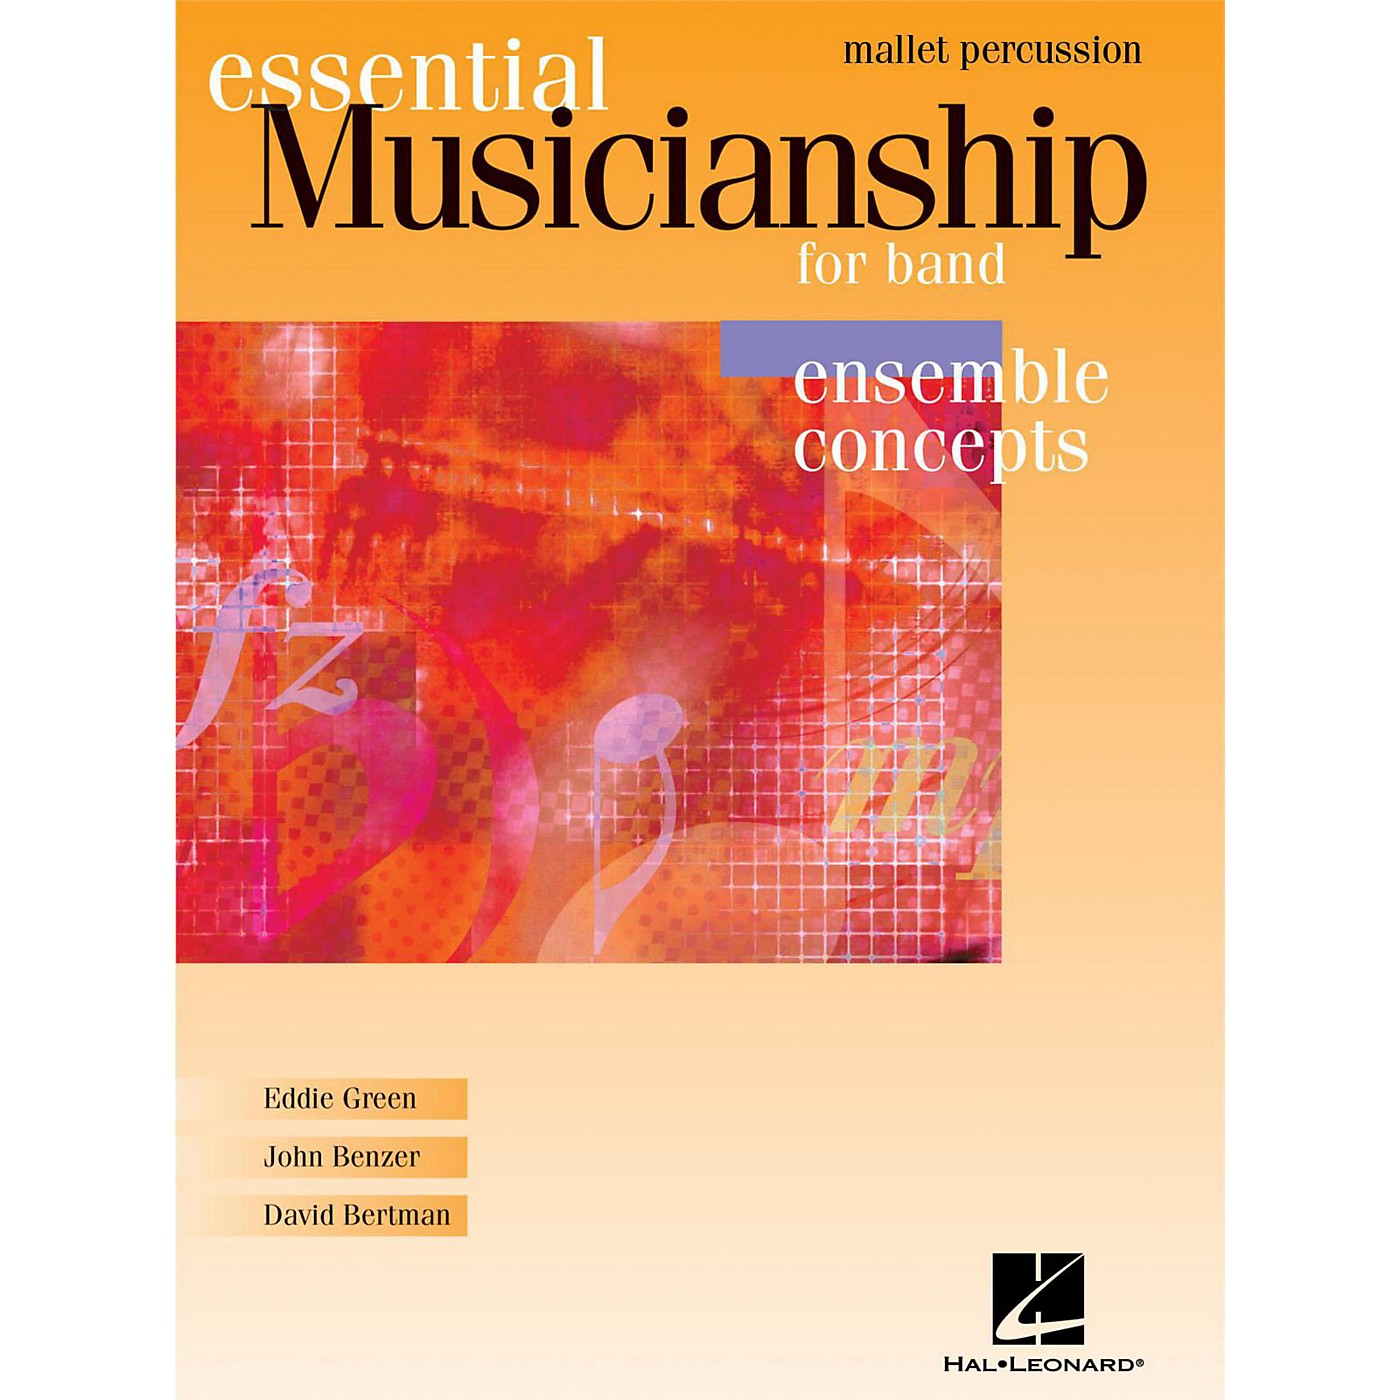 Hal Leonard Essential Musicianship for Band - Ensemble Concepts Mallet Percussion thumbnail